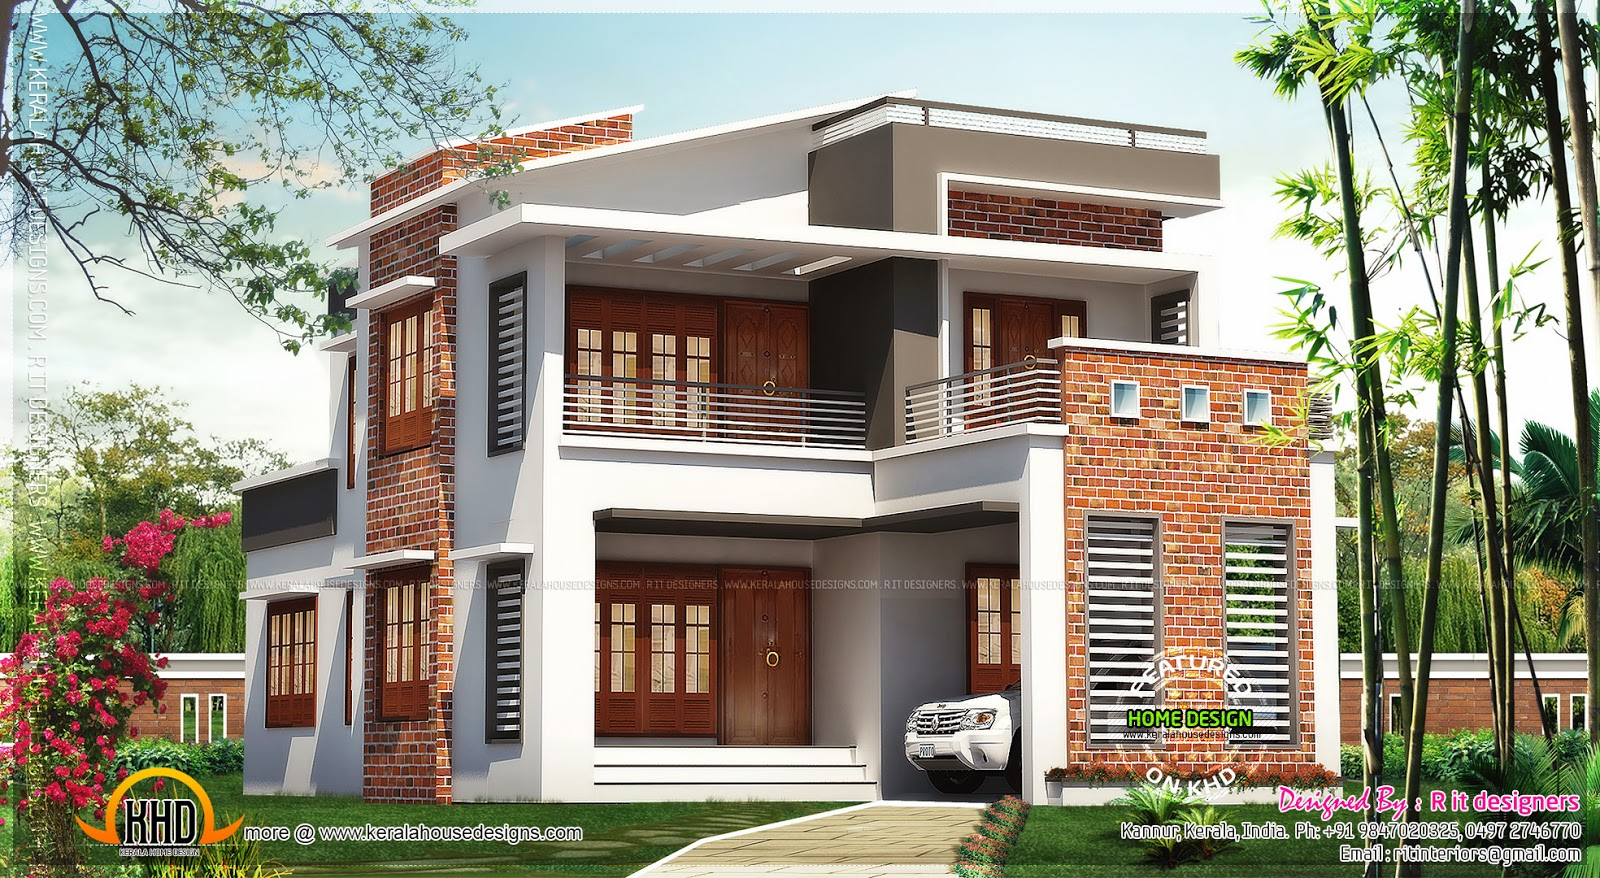 Brick mix house exterior design kerala home design and Indian home exterior design photos